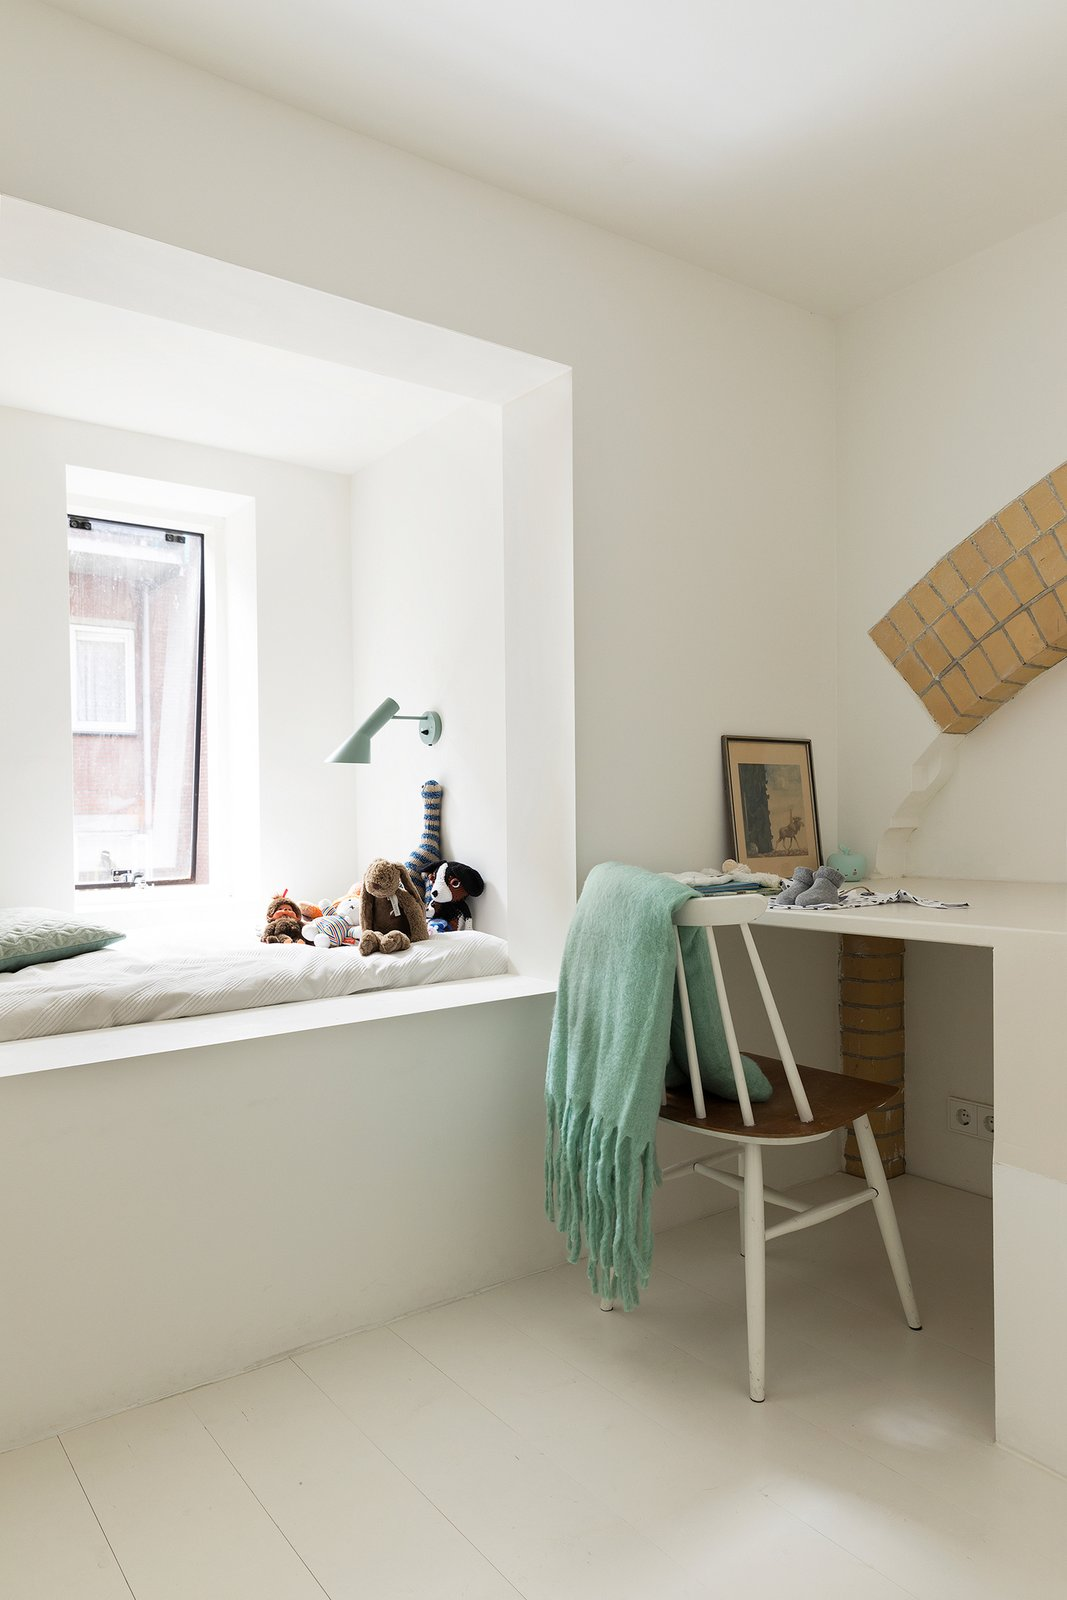 Kids, Chair, Painted Wood, Bed, Lamps, Bedroom, and Neutral A child's bedroom.  Kids Painted Wood Bed Neutral Photos from A 20th-Century Dutch Schoolhouse Now Holds a Series of Airy Lofts